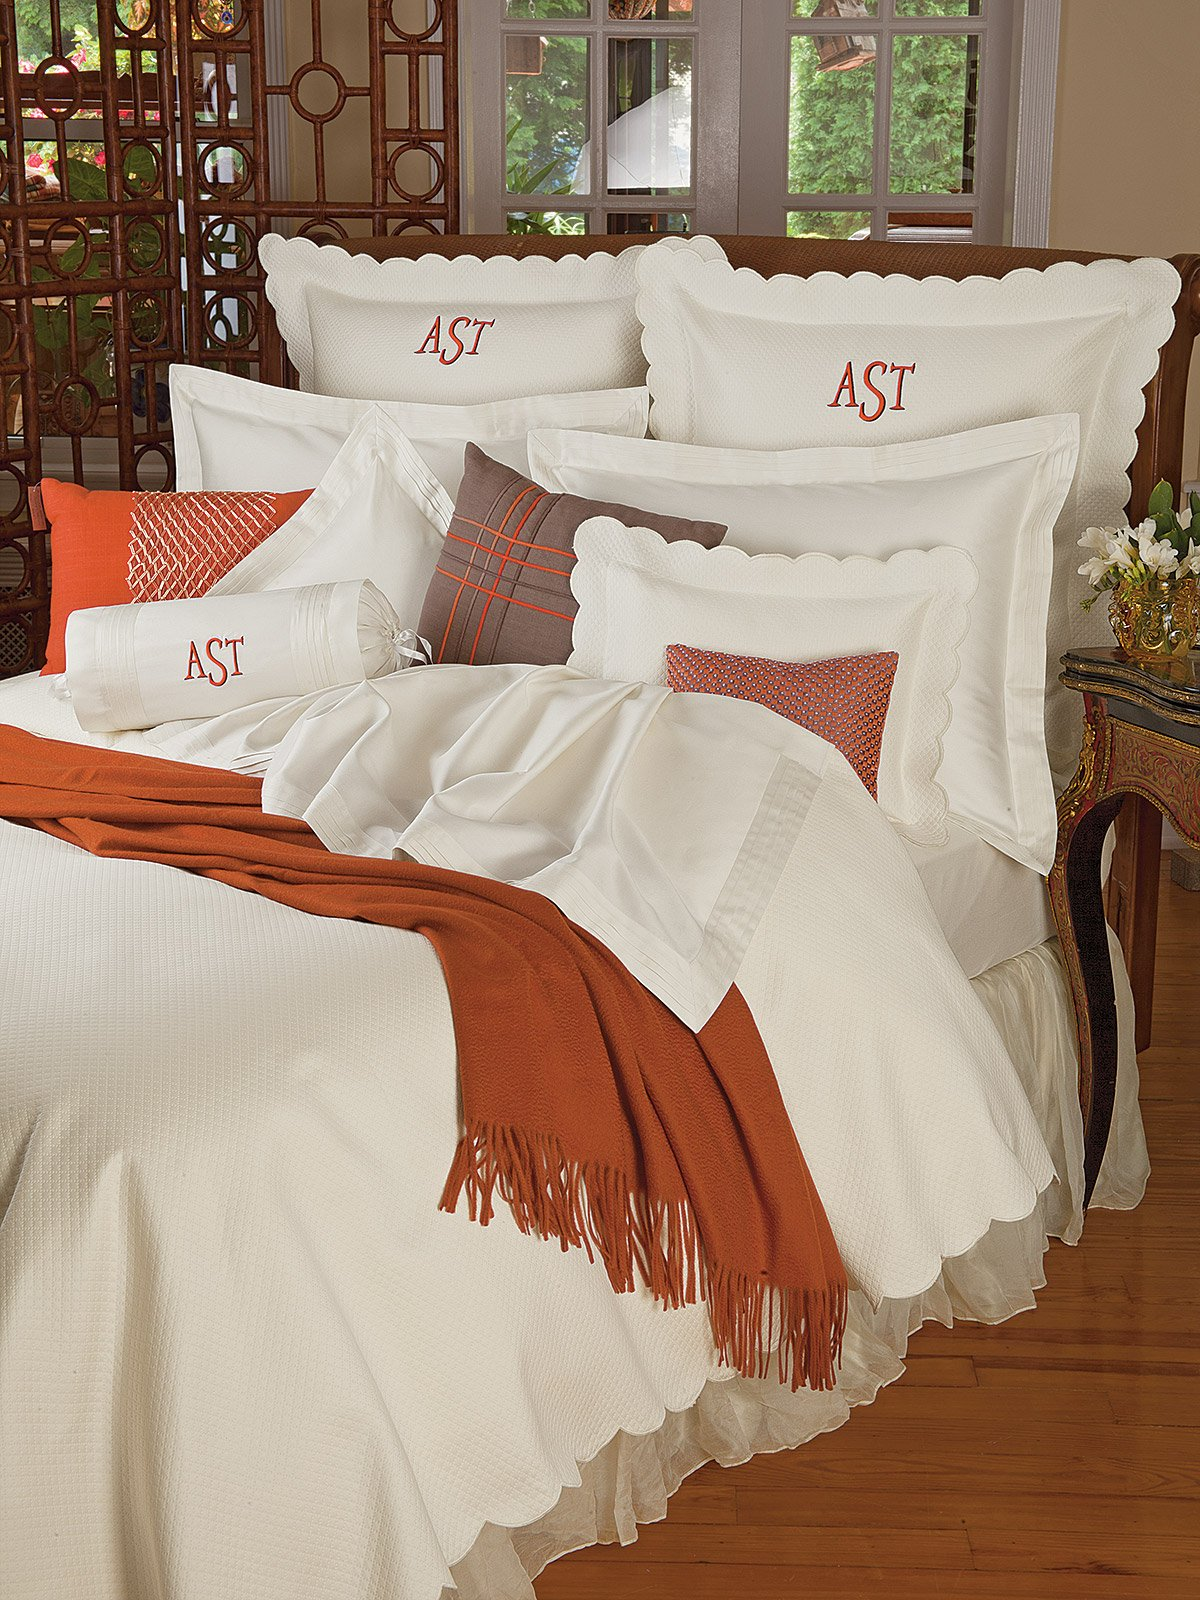 Throw Pillow Duvet Covers : Color Coordinating with Blanket Covers, Duvet Covers, Shams and Decorative Pillows - Schweitzerlinen